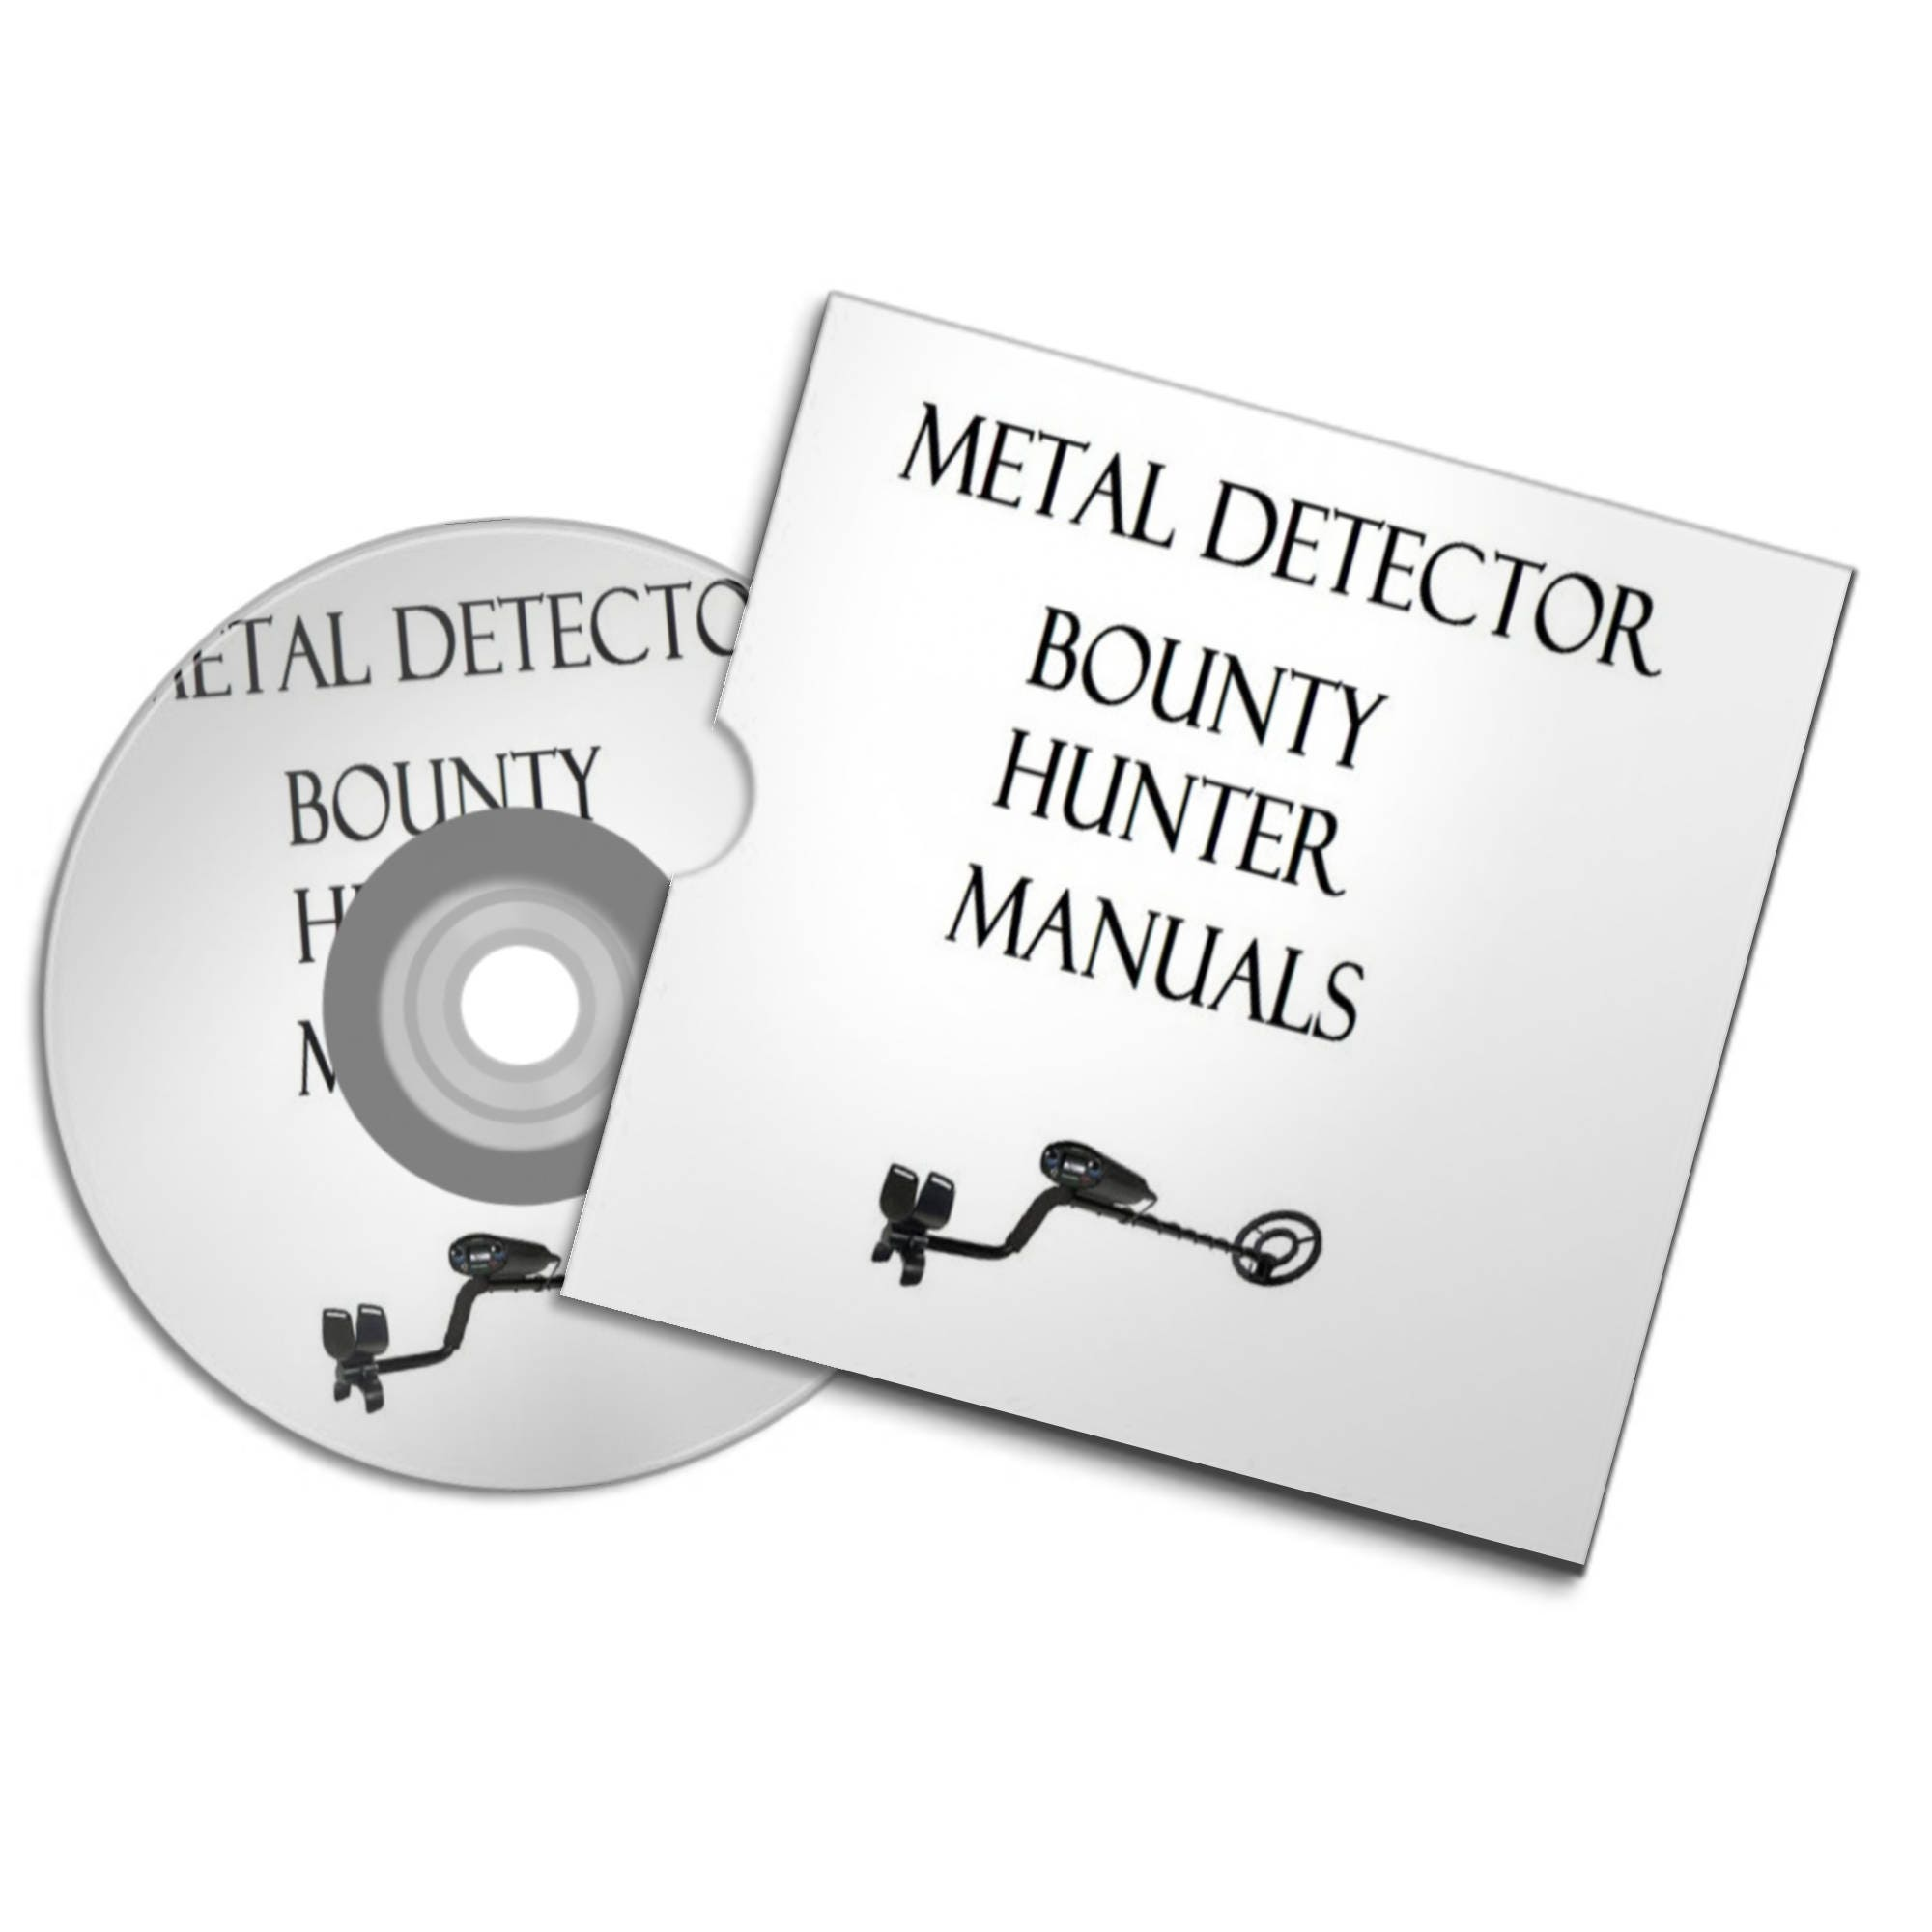 Metal Detector Owner User Instruction Manuals Books Viking Etsy Topics Related To Vlf Schematic